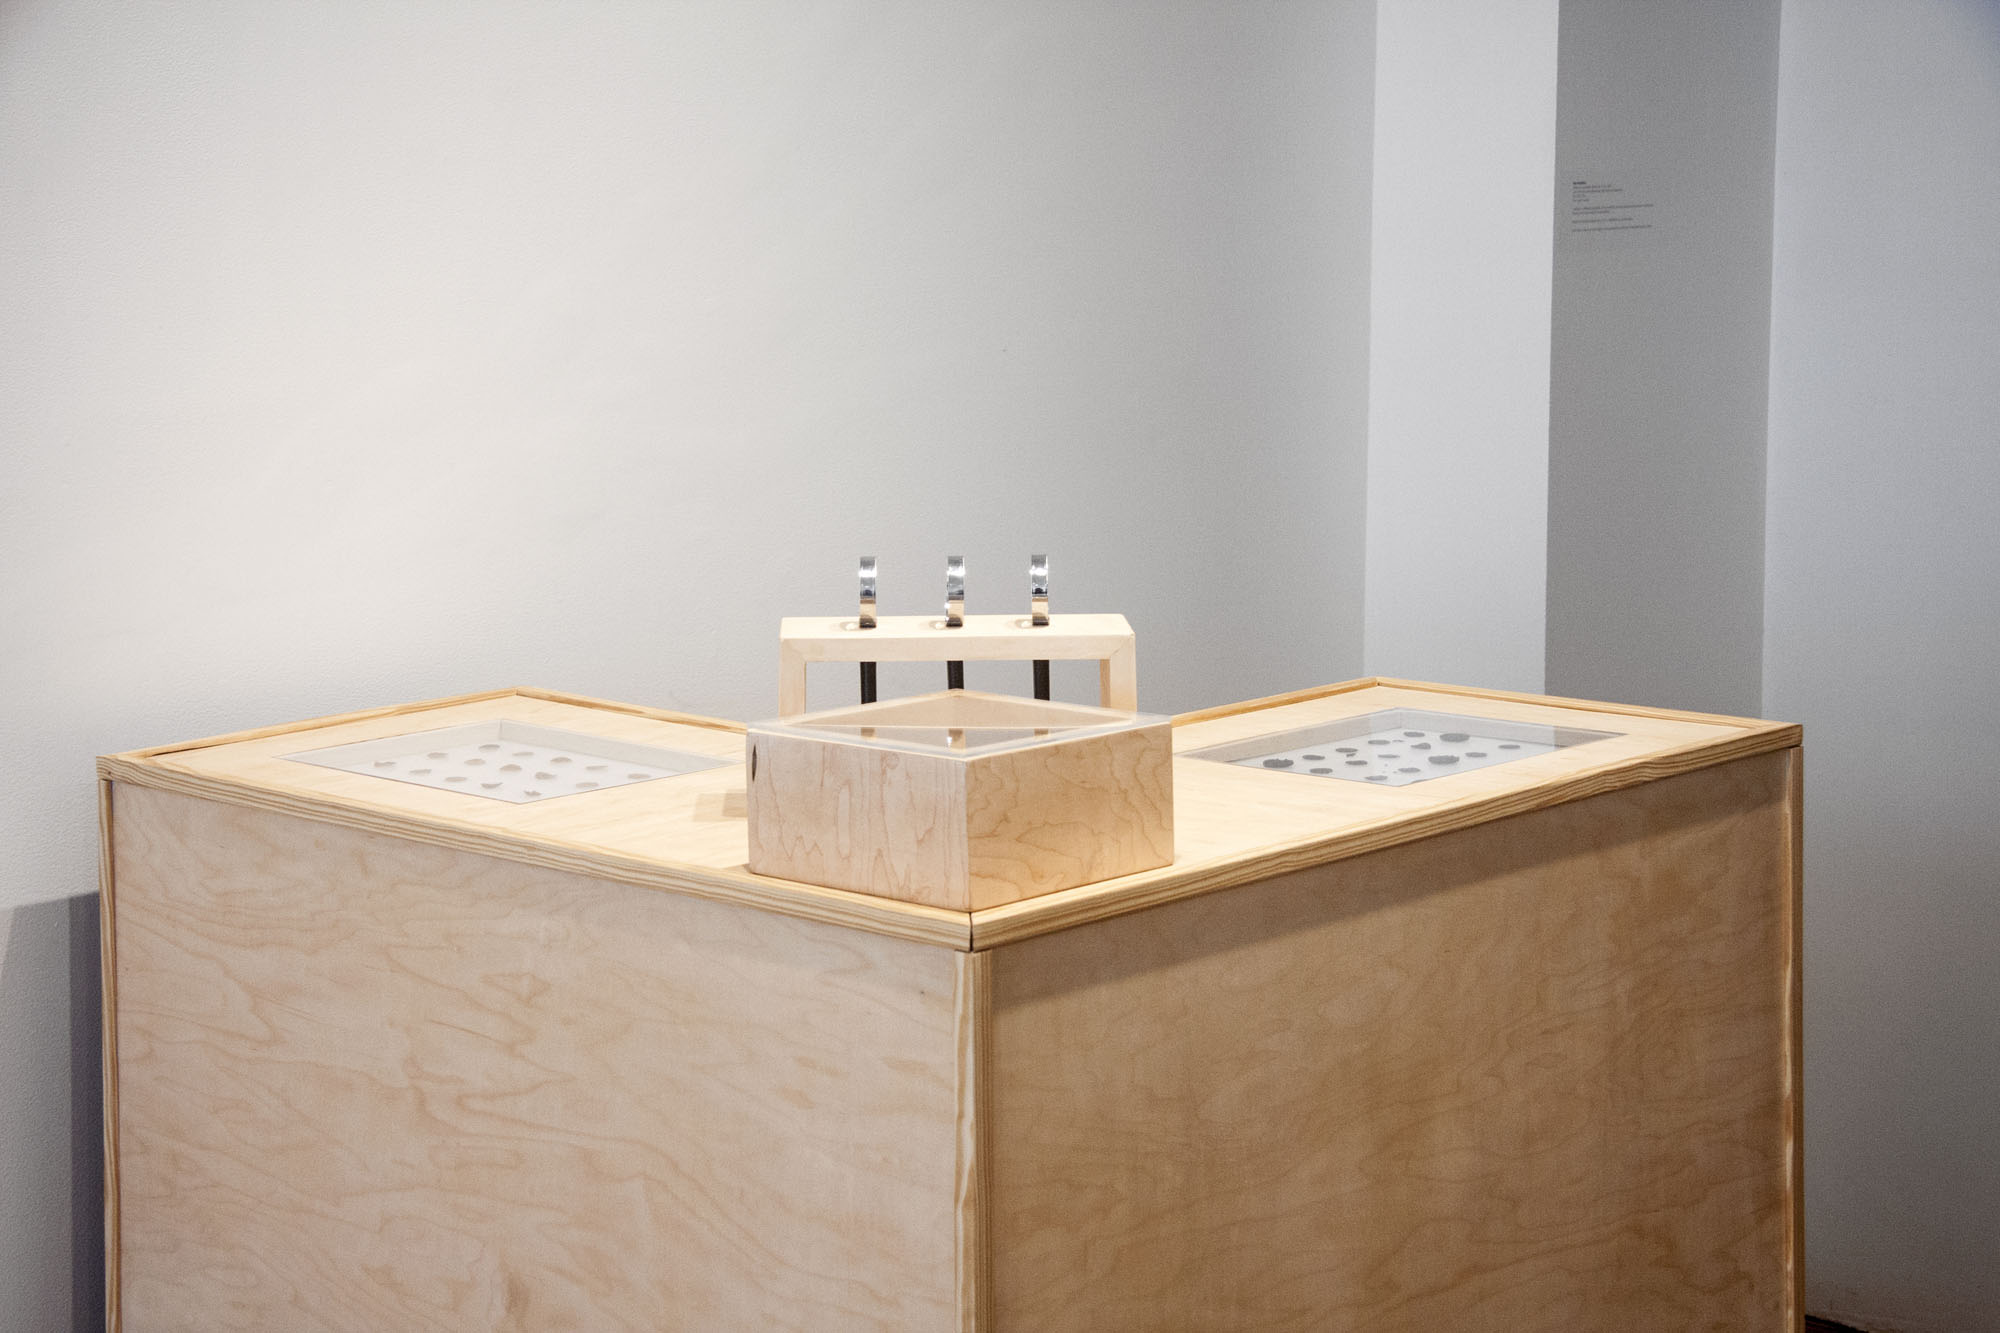 Artifacts of Homebrew Batches No. 1 & 2, installation view